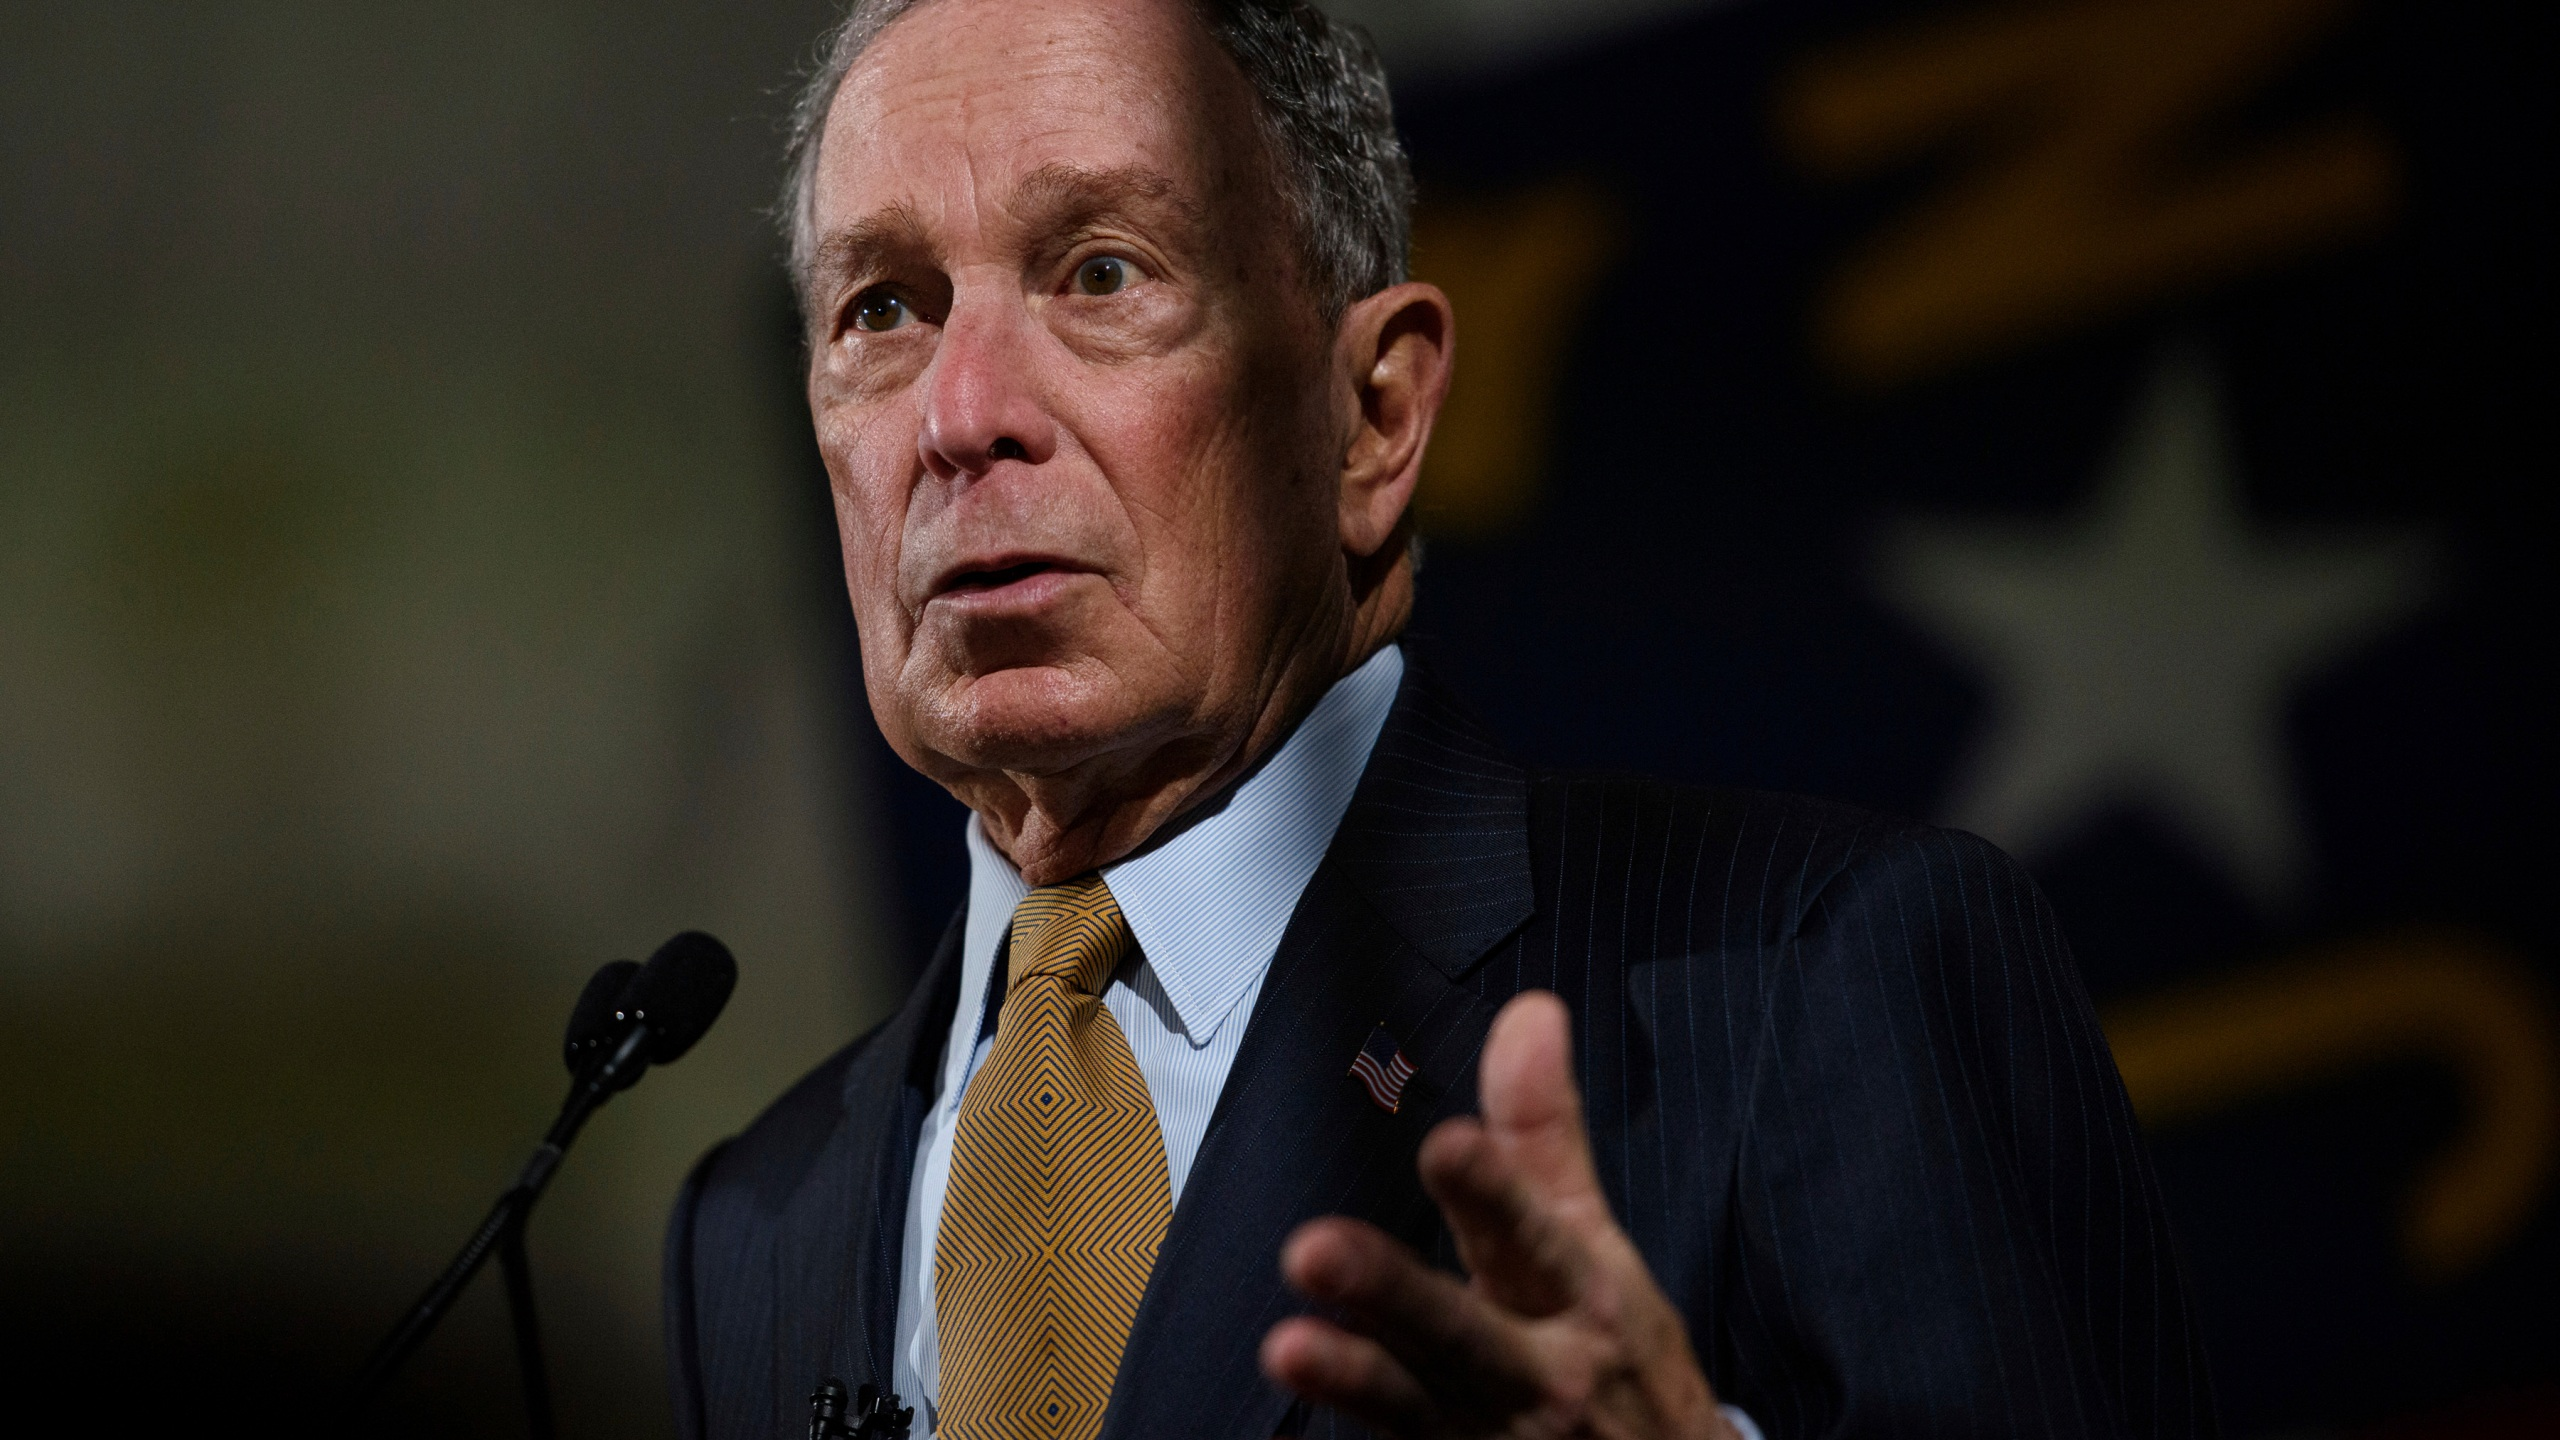 CANDIDATE BLOOMBERG